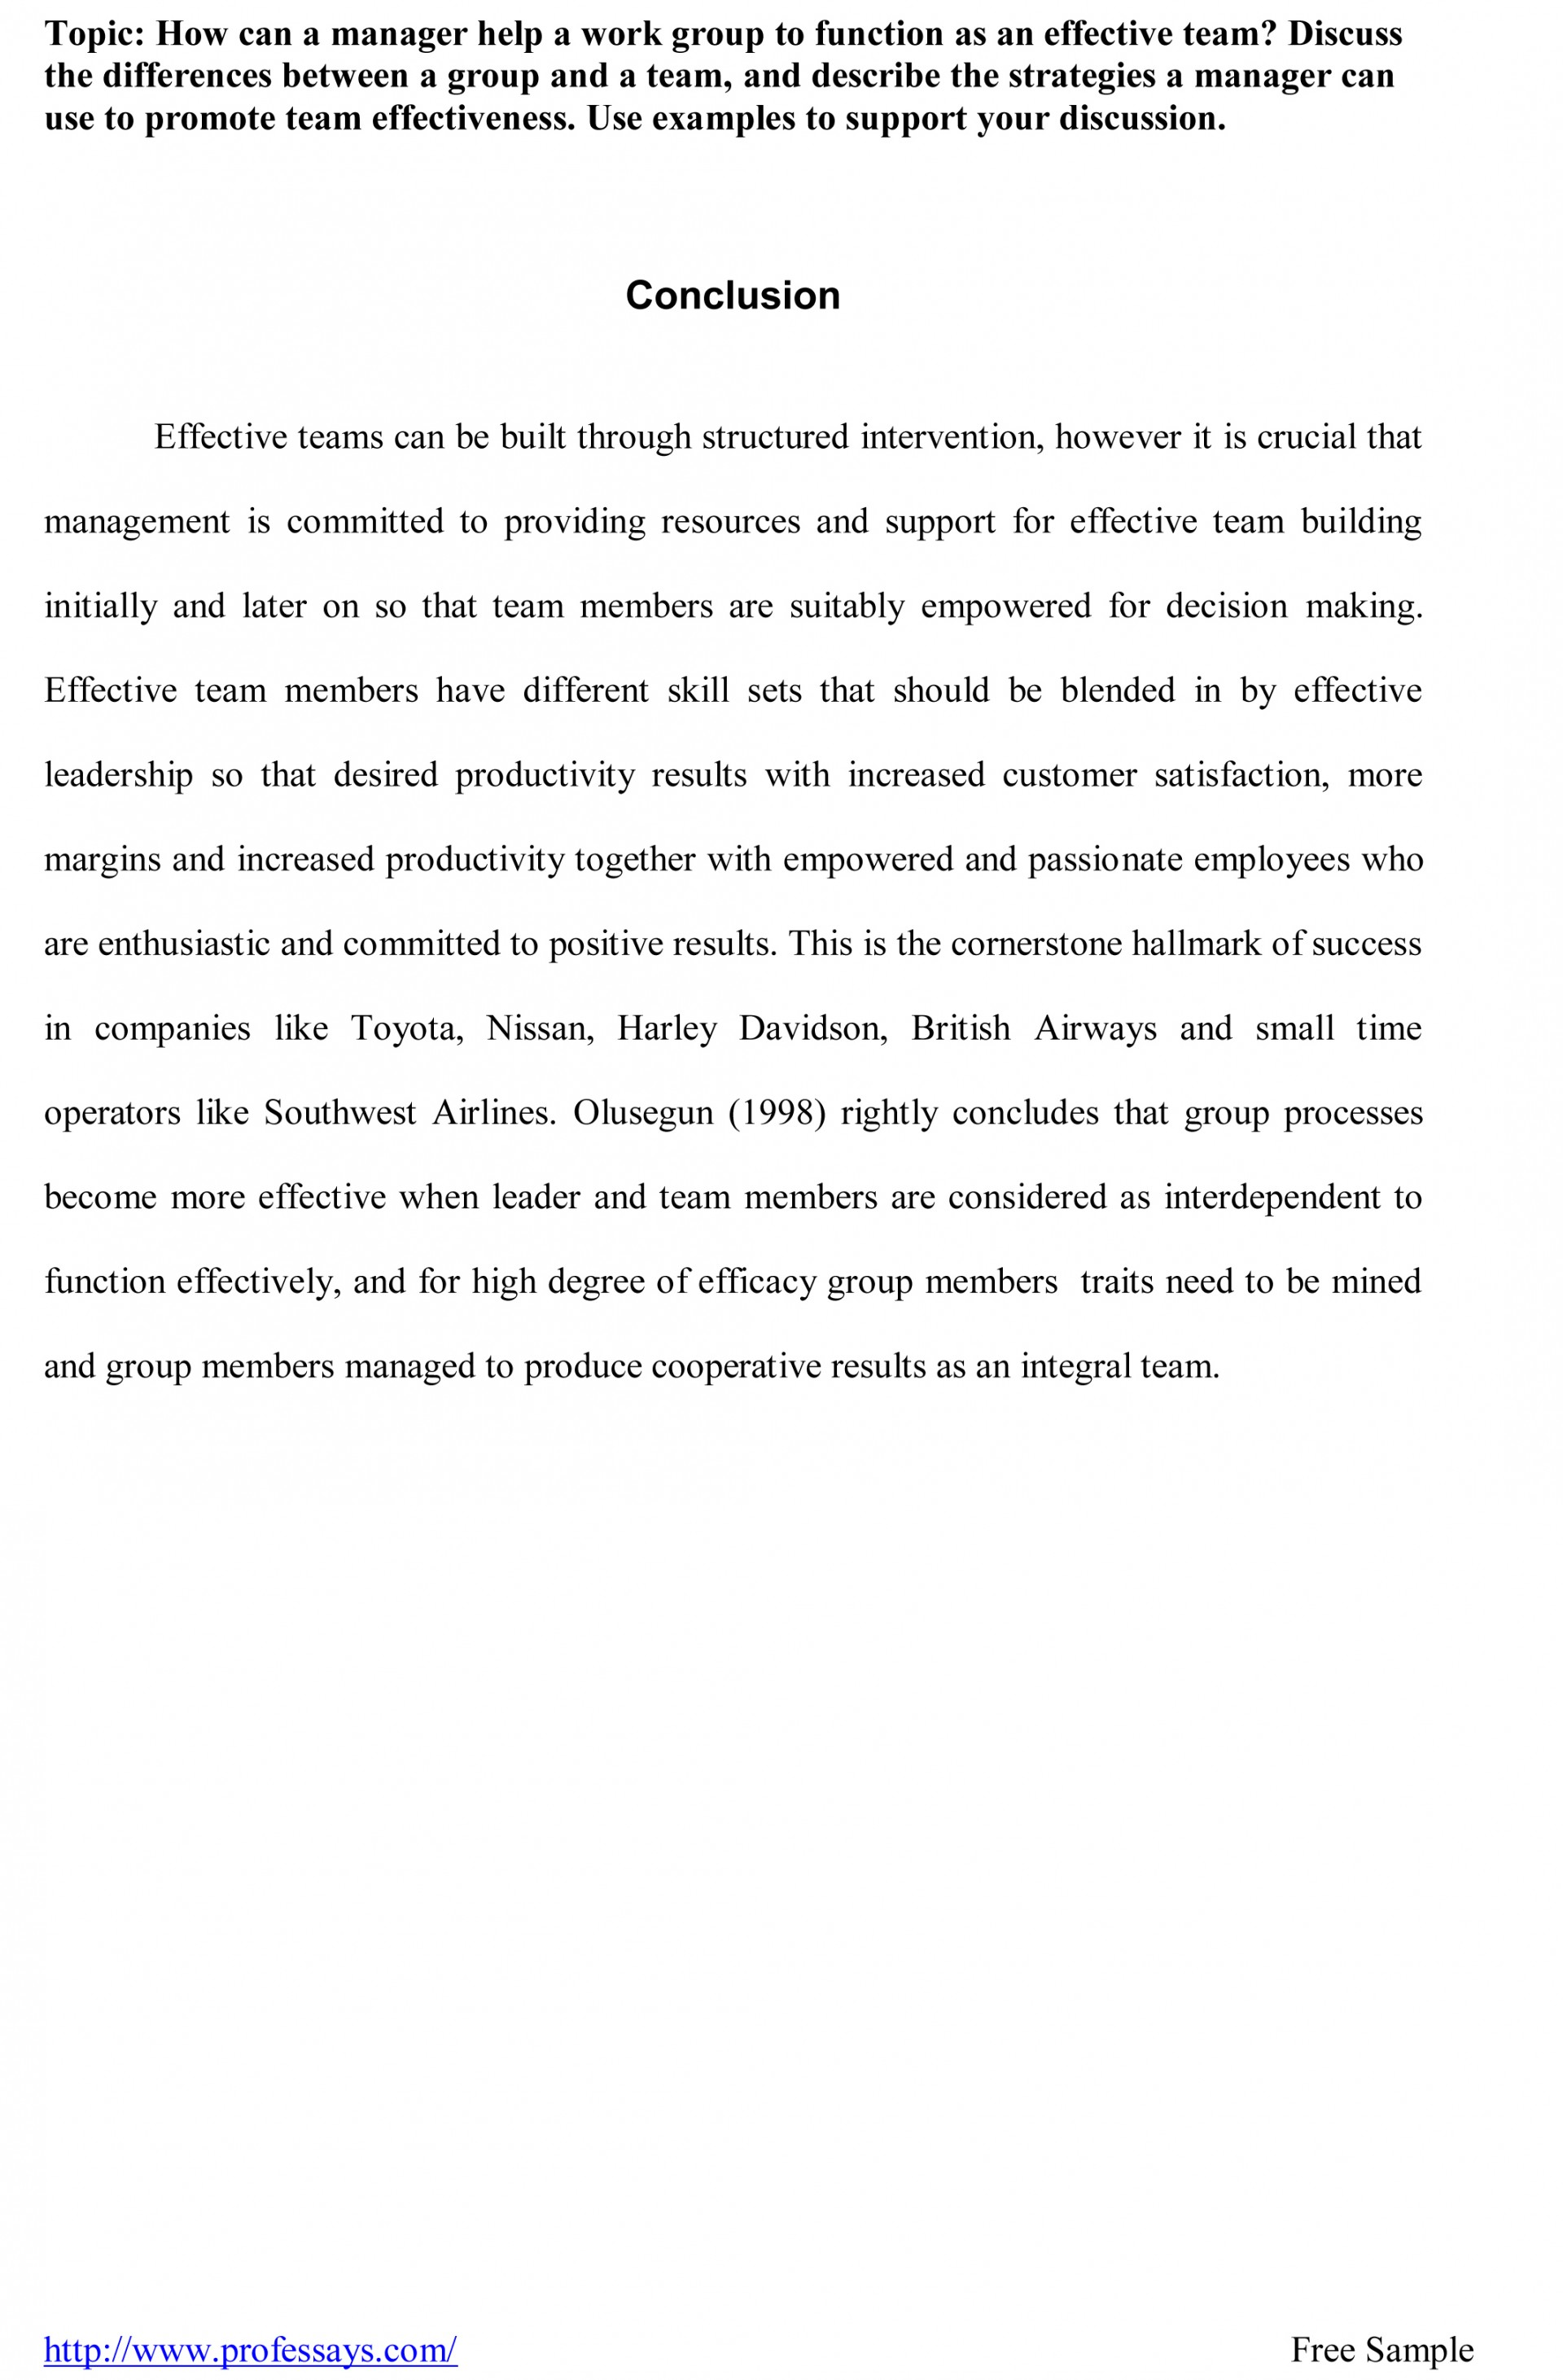 006 Help With Research Paper Conclusion Sample For Unique A Writing Outline Me Write Free 1920